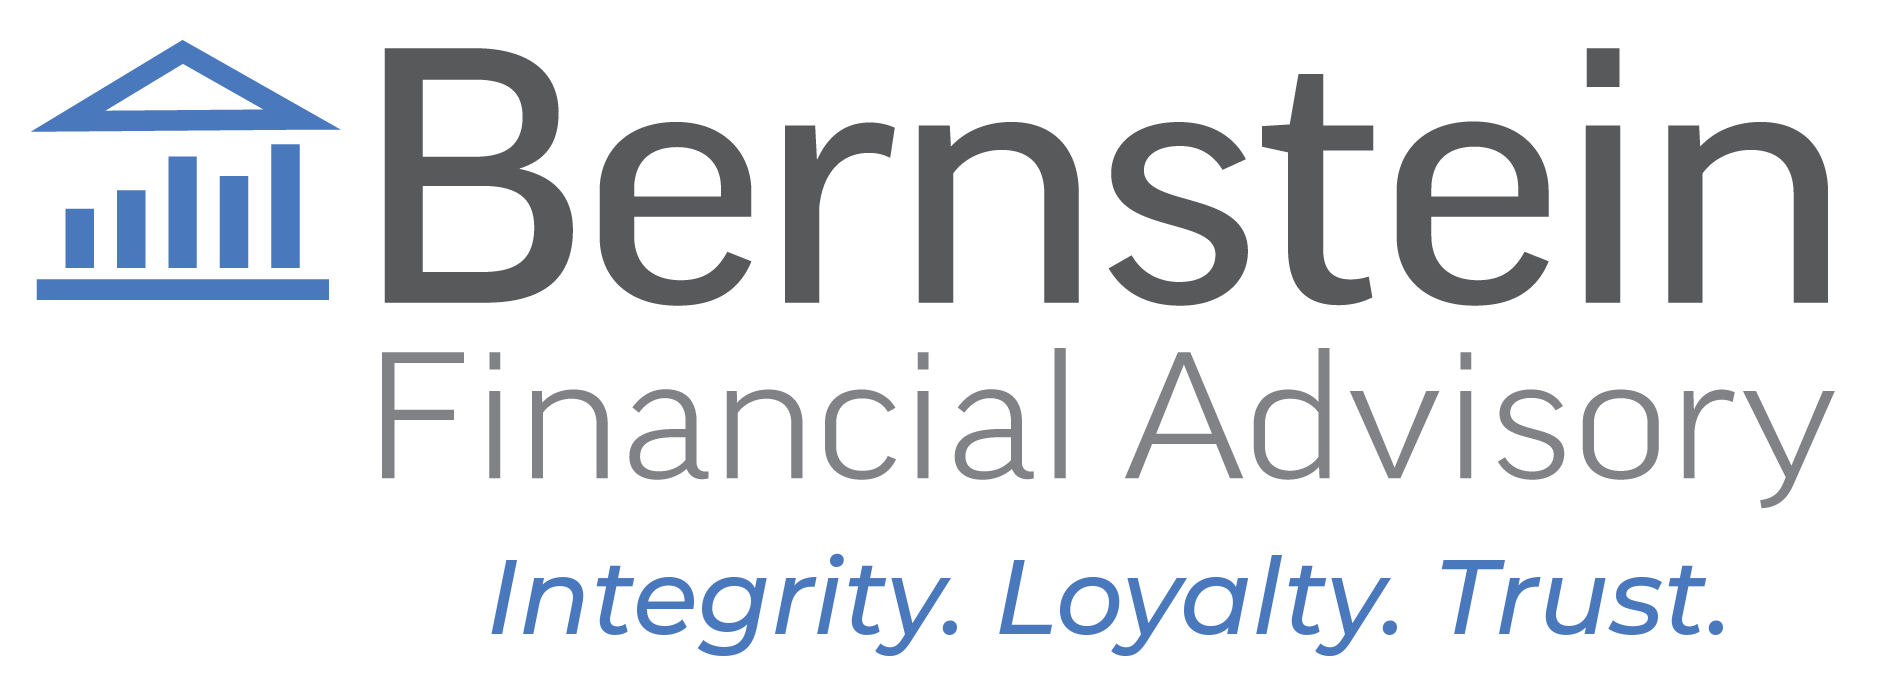 Bernstein Financial Advisory - Integrity. Loyalty. Trust